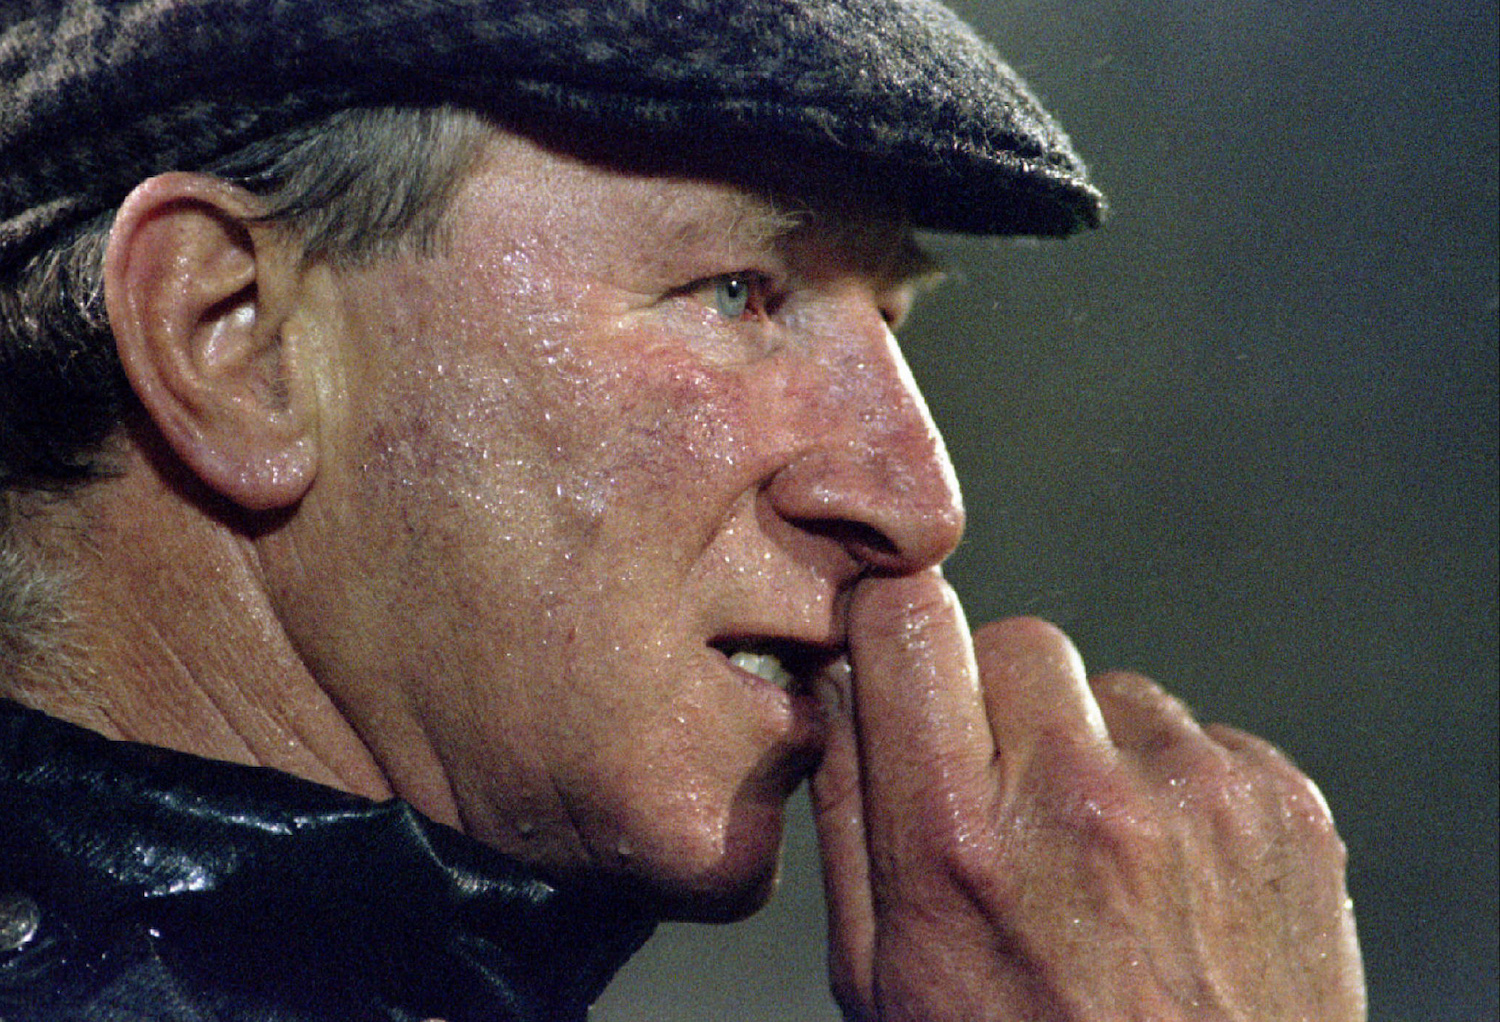 Ireland manager Jack Charlton watches the final minutes of a European Championship qualifying match against Portugal in Lisbon in November 1995. (Reuters Photo)